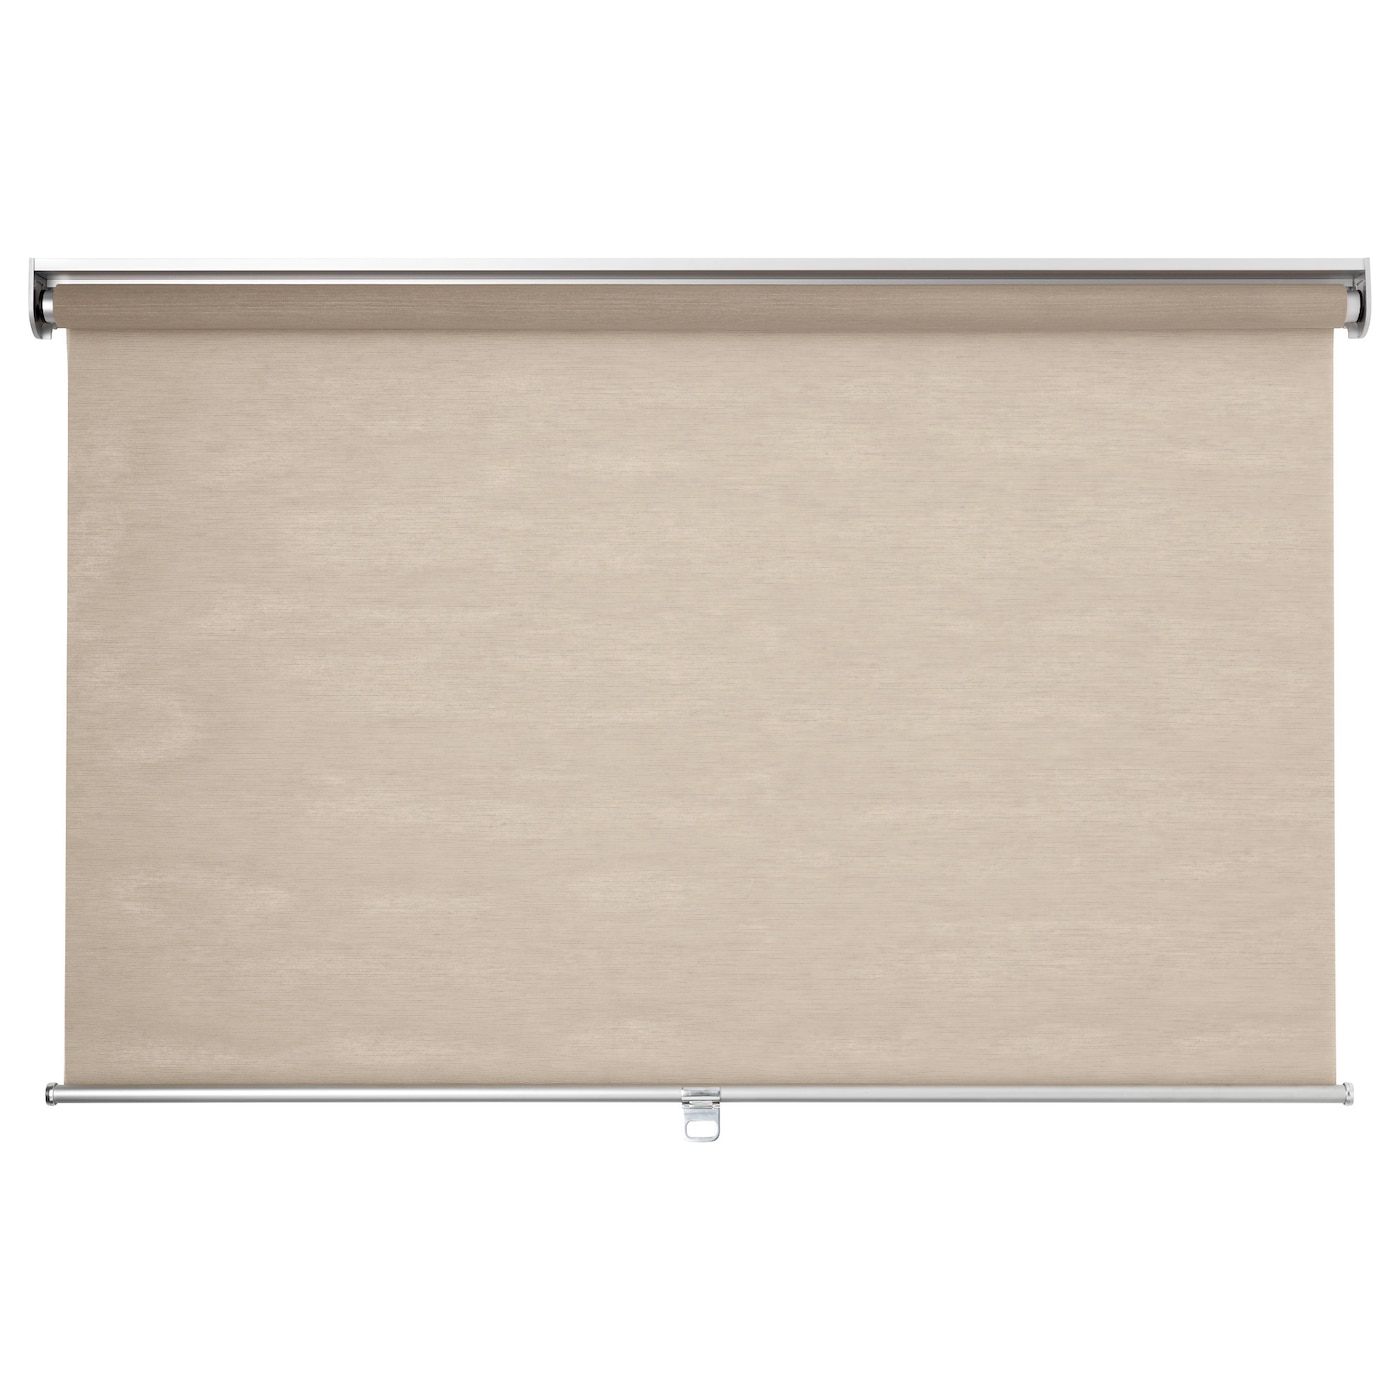 IKEA SKOGSKL VER roller blind The blind is cordless for increased child  safety. Blinds   Roller  Roman   Blackout Blinds   IKEA